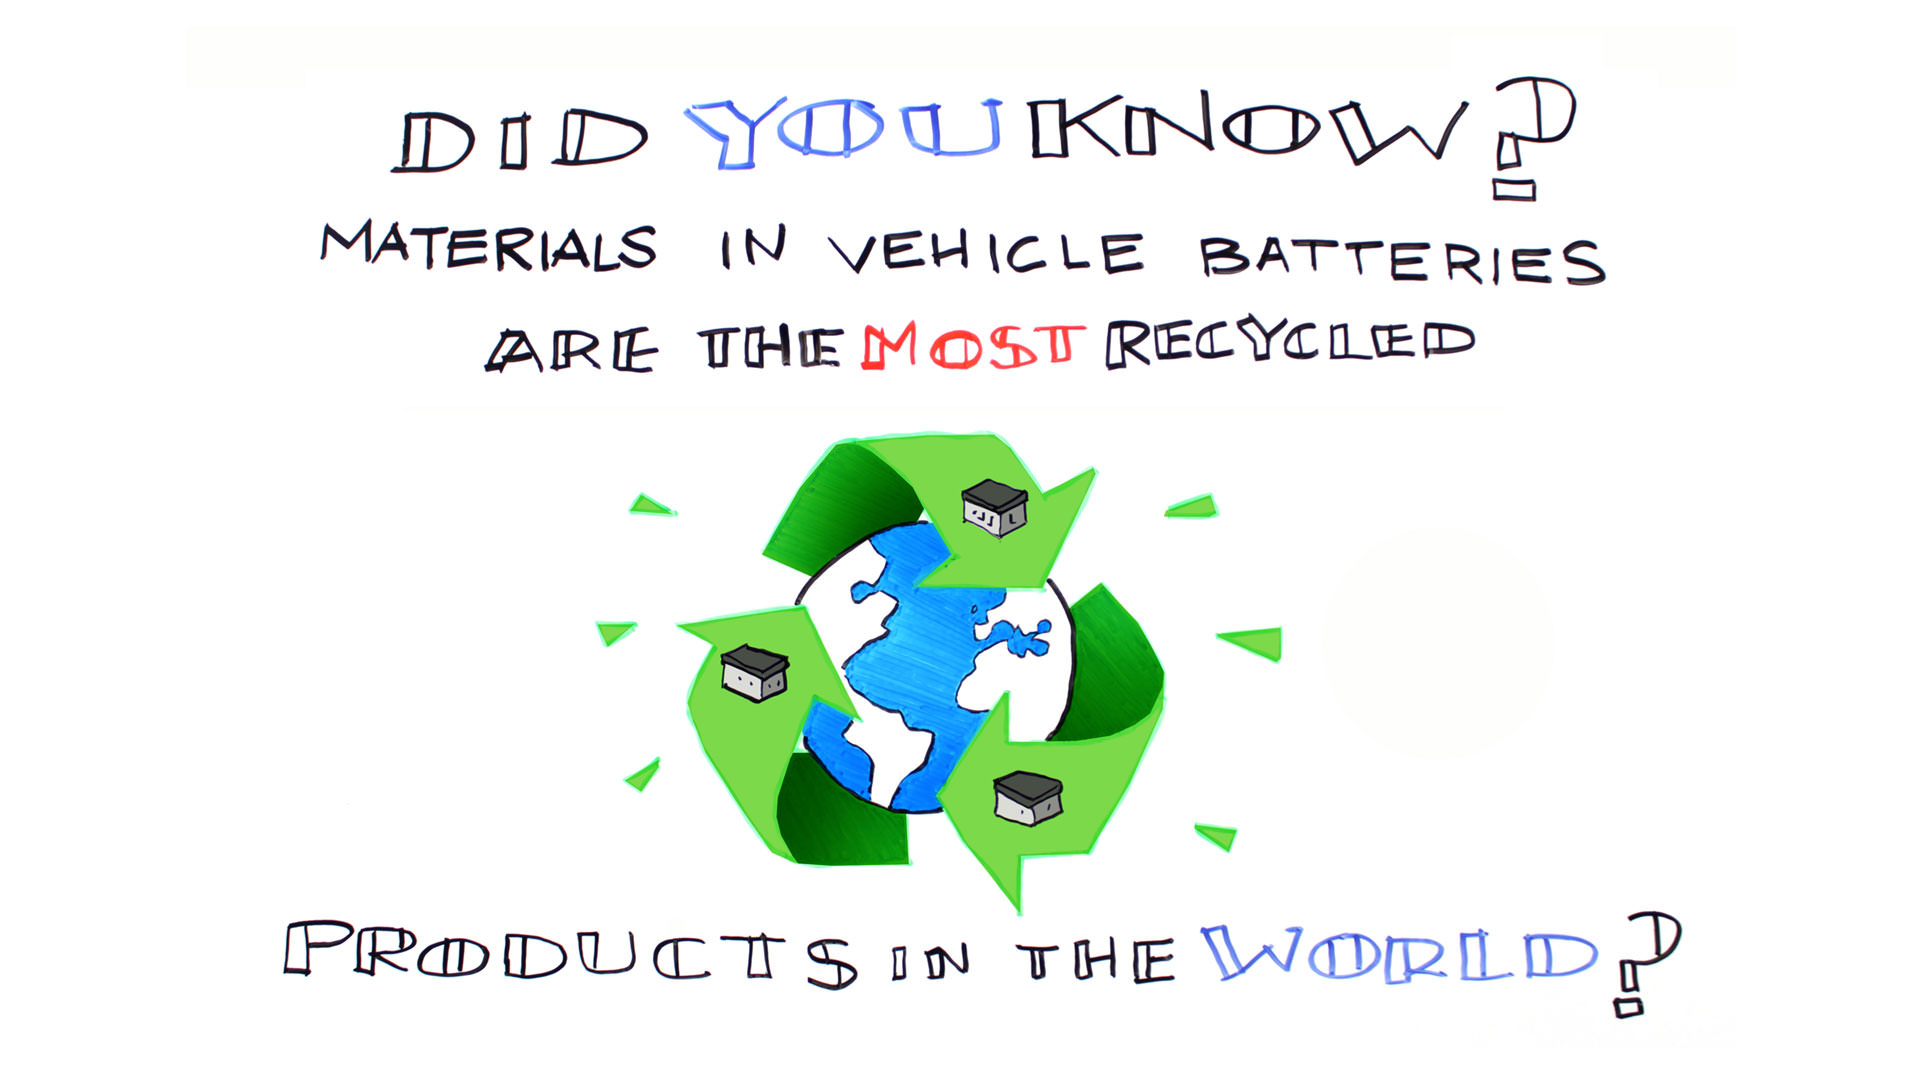 Auto Battery Recycling Installation Diagram Of A Car Vehicle